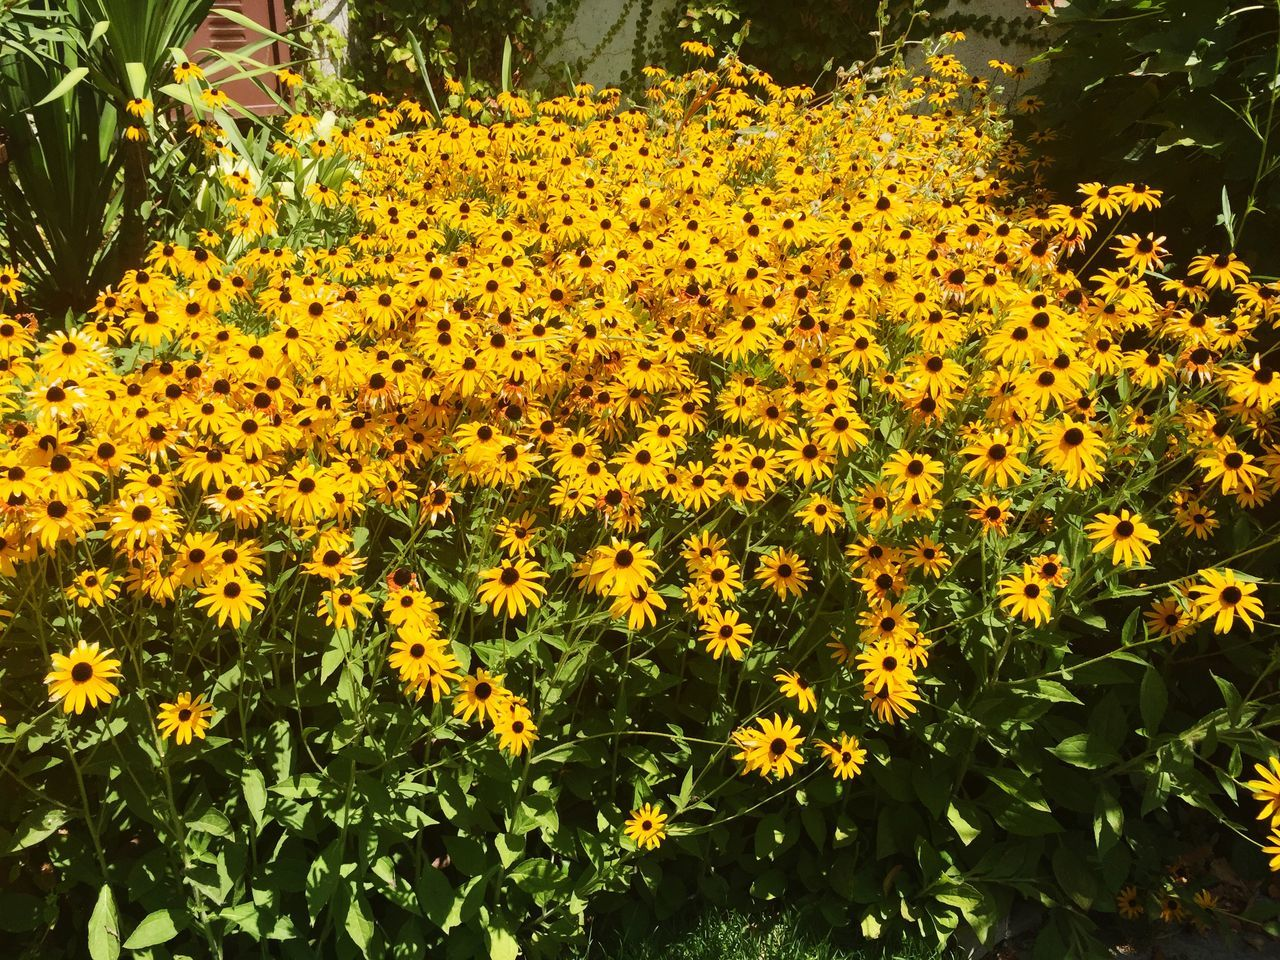 High Angle View Of Fresh Yellow Flower Bunch In Garden